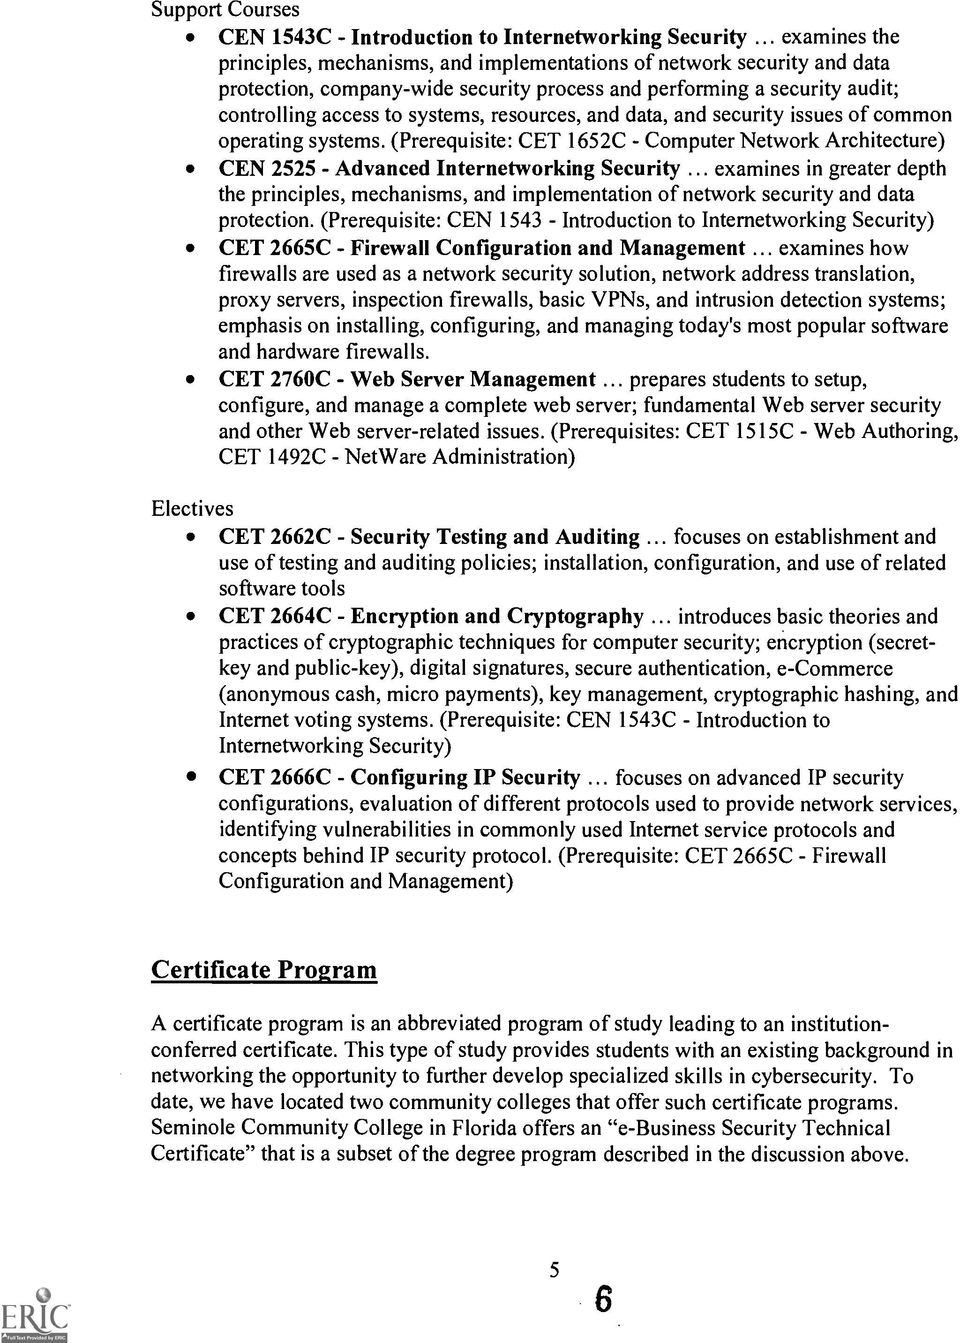 resources, and data, and security issues of common operating systems. (Prerequisite: CET 1652C - Computer Network Architecture) CEN 2525 - Advanced Internetworking Security.